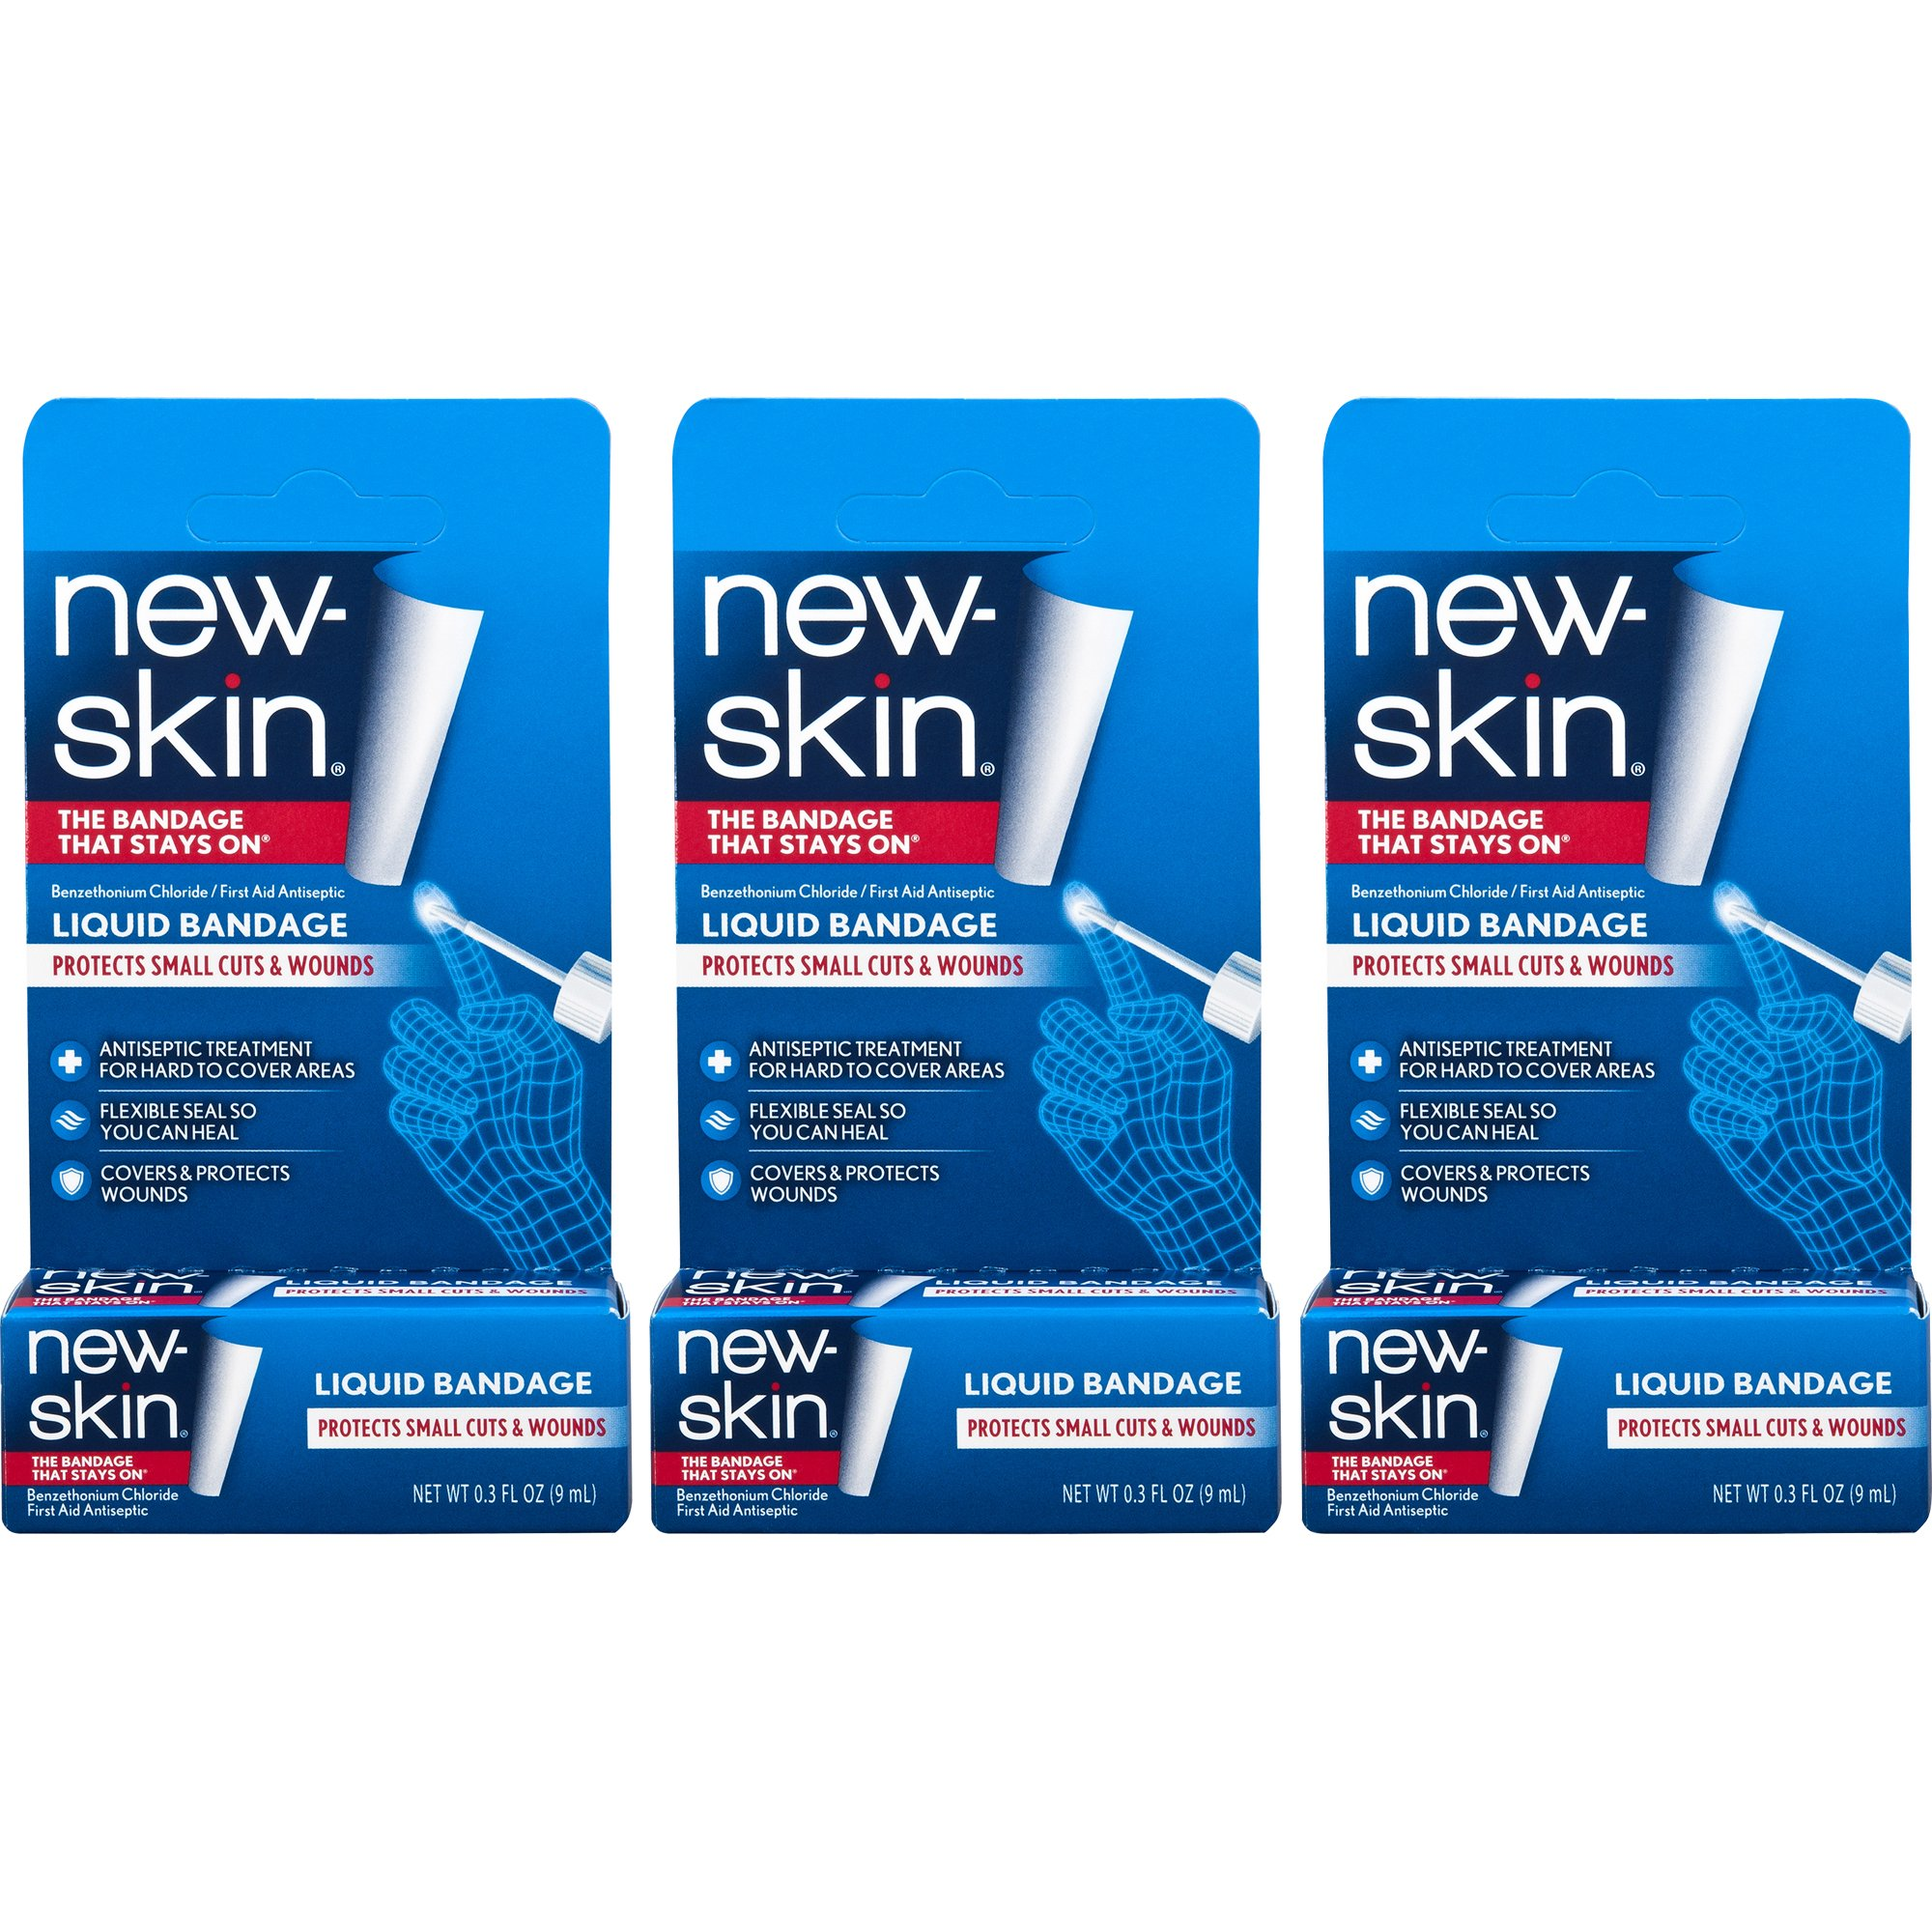 New-Skin Liquid Bandage 0.3 FL OZ, Liquid Bandage for Hard-to-Cover Cuts, Scrapes, Wounds, Calluses, and Dry, Cracked Skin, 3 Count